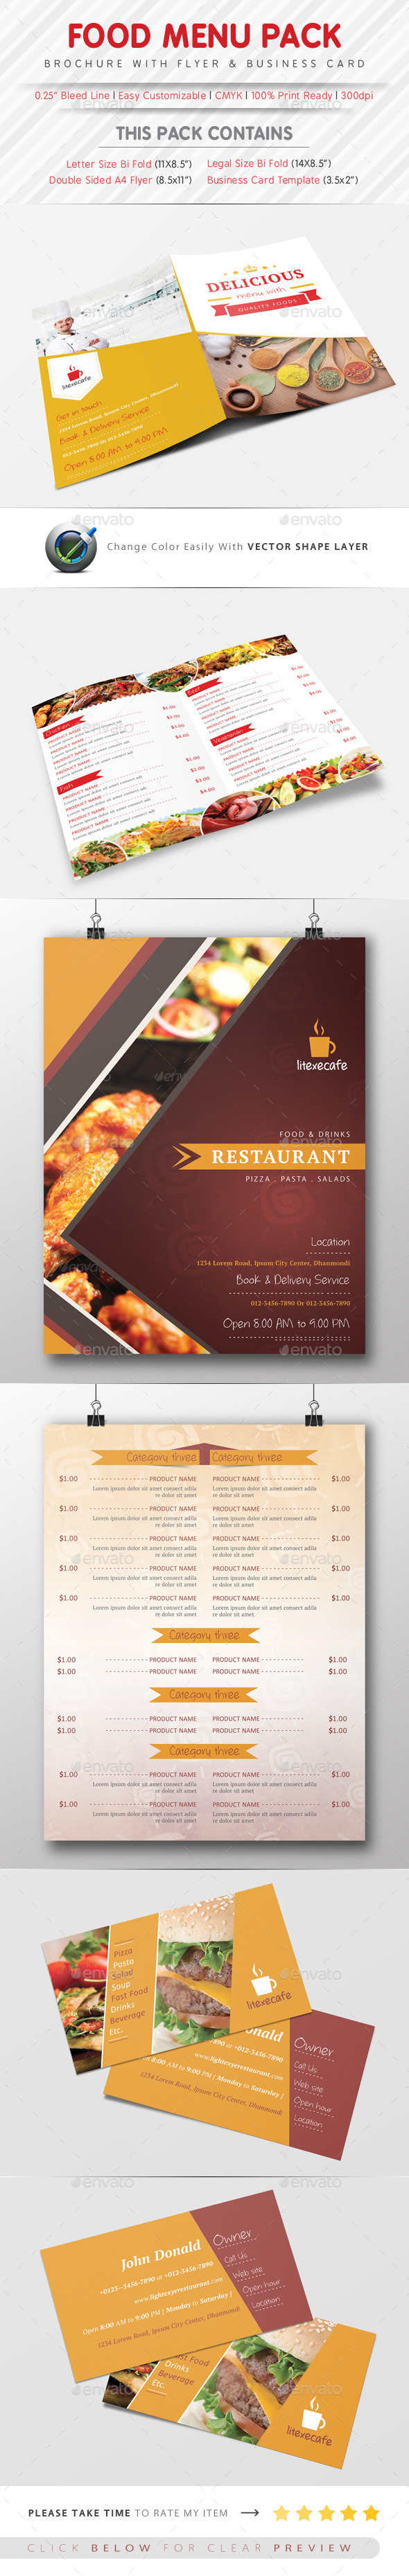 Food Menu Pack Template - Food Menus Print Templates